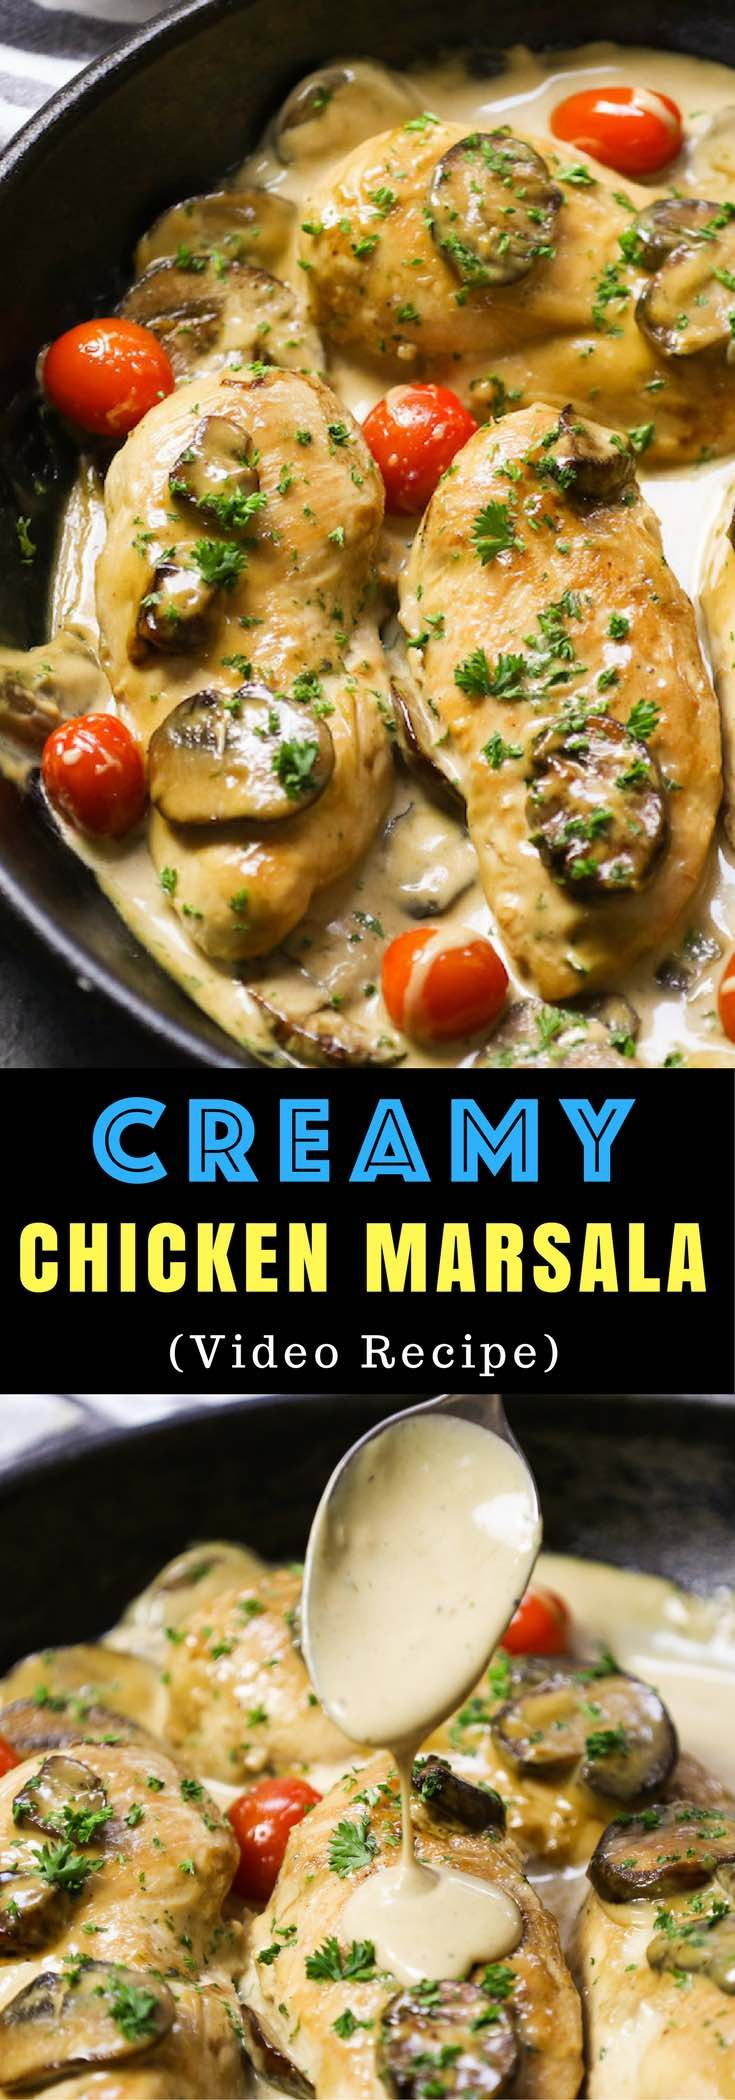 Easy Creamy Chicken Marsala – one of the easiest creamy dinner recipes. It will be on your table in less than 30 minutes. Delicious, super flavorful chicken breasts with creamy mushroom cooked with Marsala wine. Simply Yummy! Quick and easy dinner recipe. Video recipe. | tipbuzz.com